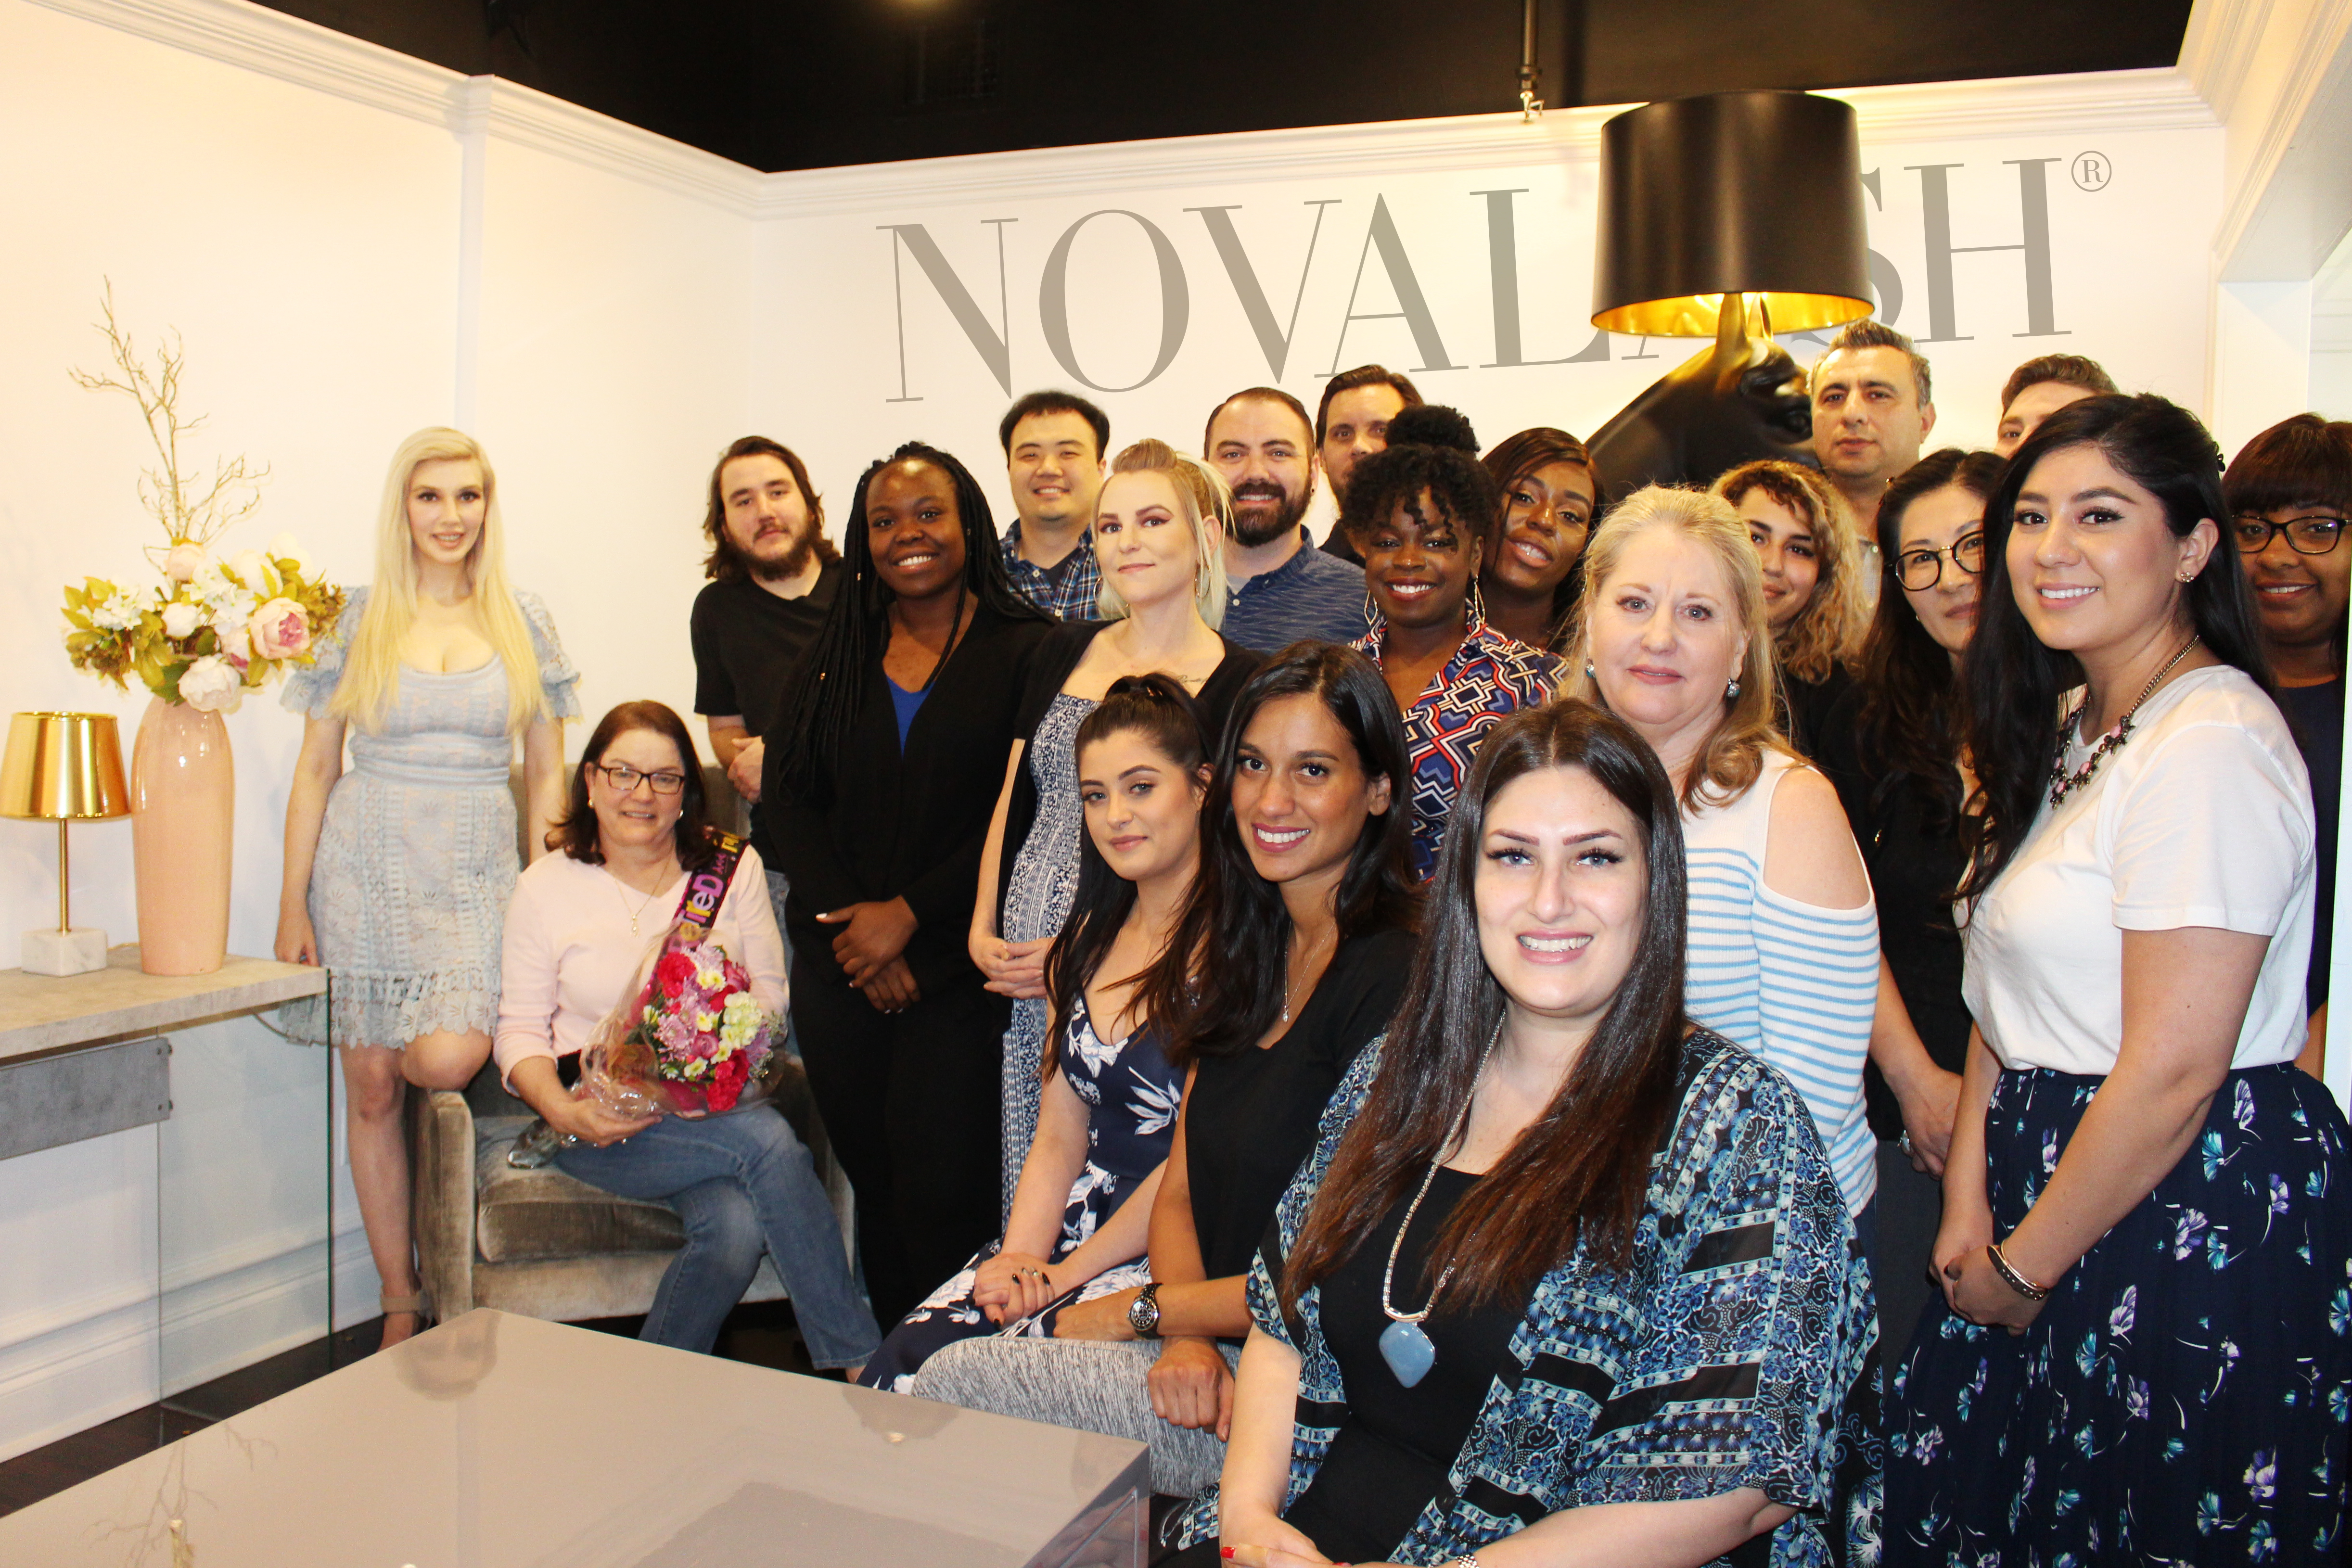 Loving Lashes: NovaLash COO Helped Make Lash Extensions a Beauty Must-Have